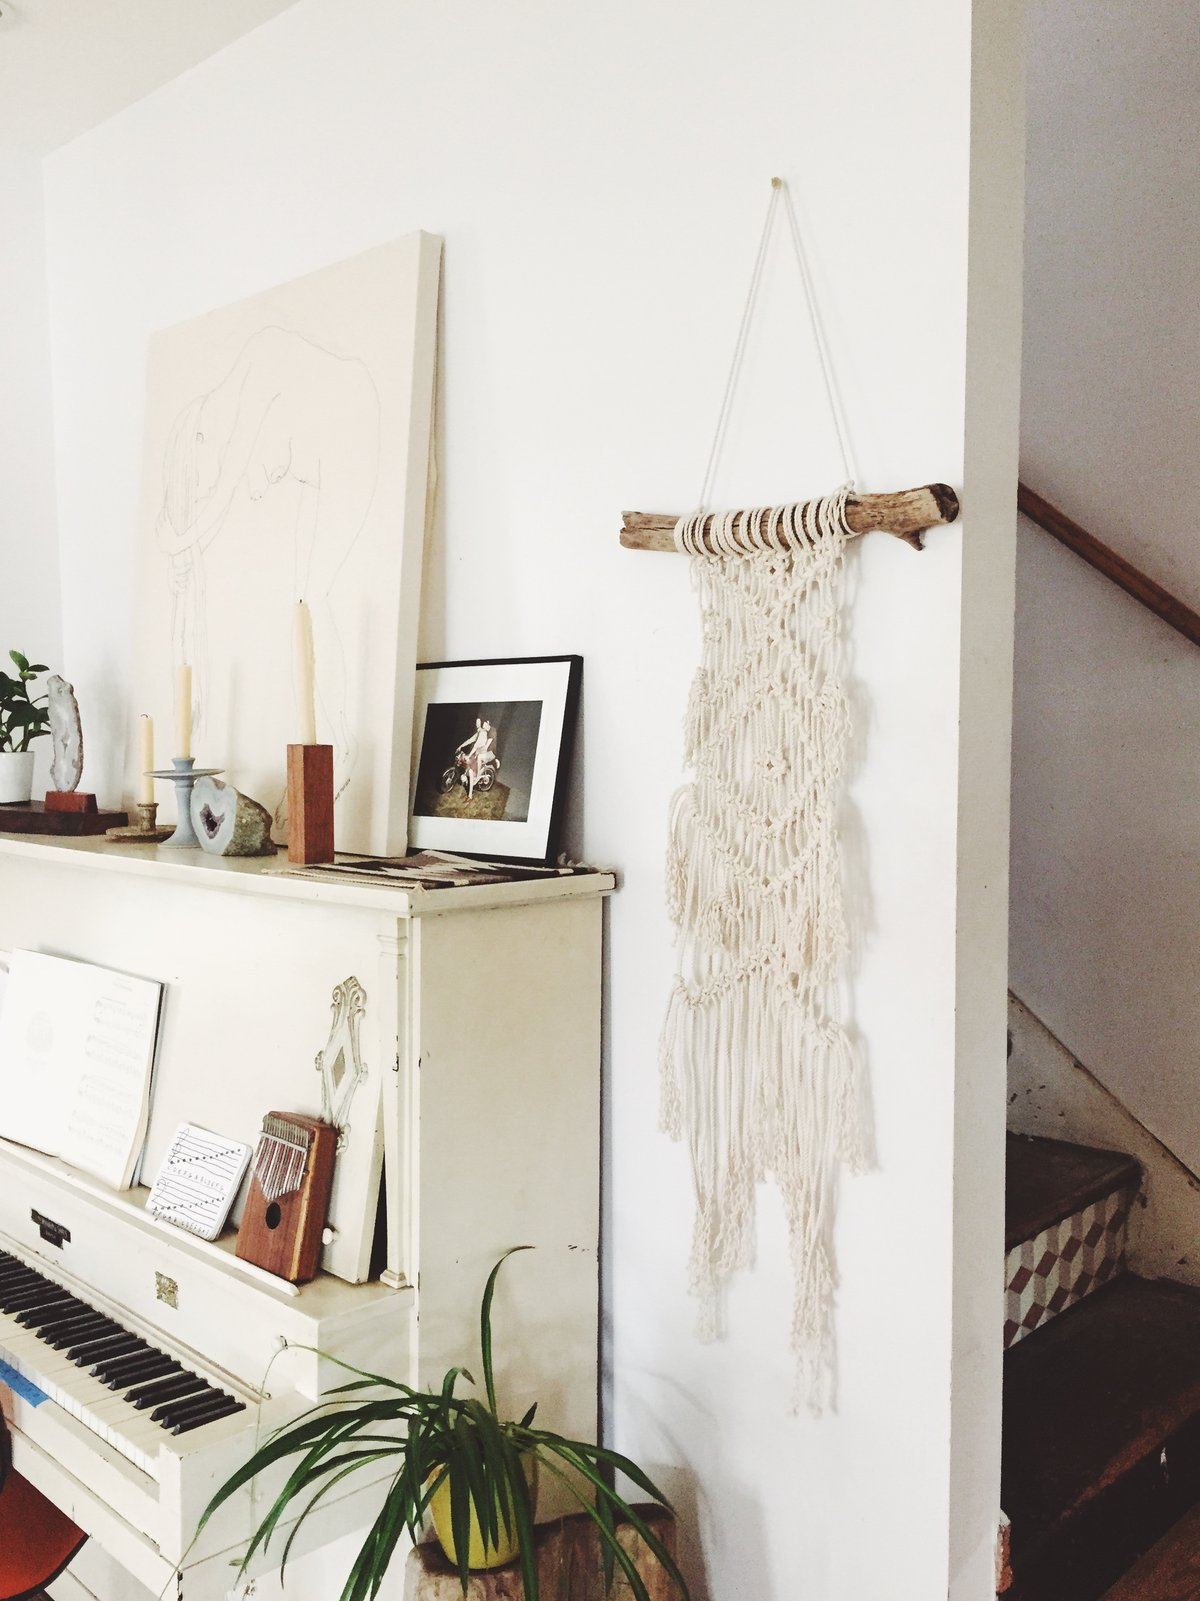 In case you missed our exciting announcement, we will be hosting fiber artist and designer Emily Katz for her  Modern Macrame  book tour this summer!Not only will Emily be at our shop for a book signing, she will be teaching a  macrame wall hanging class too!